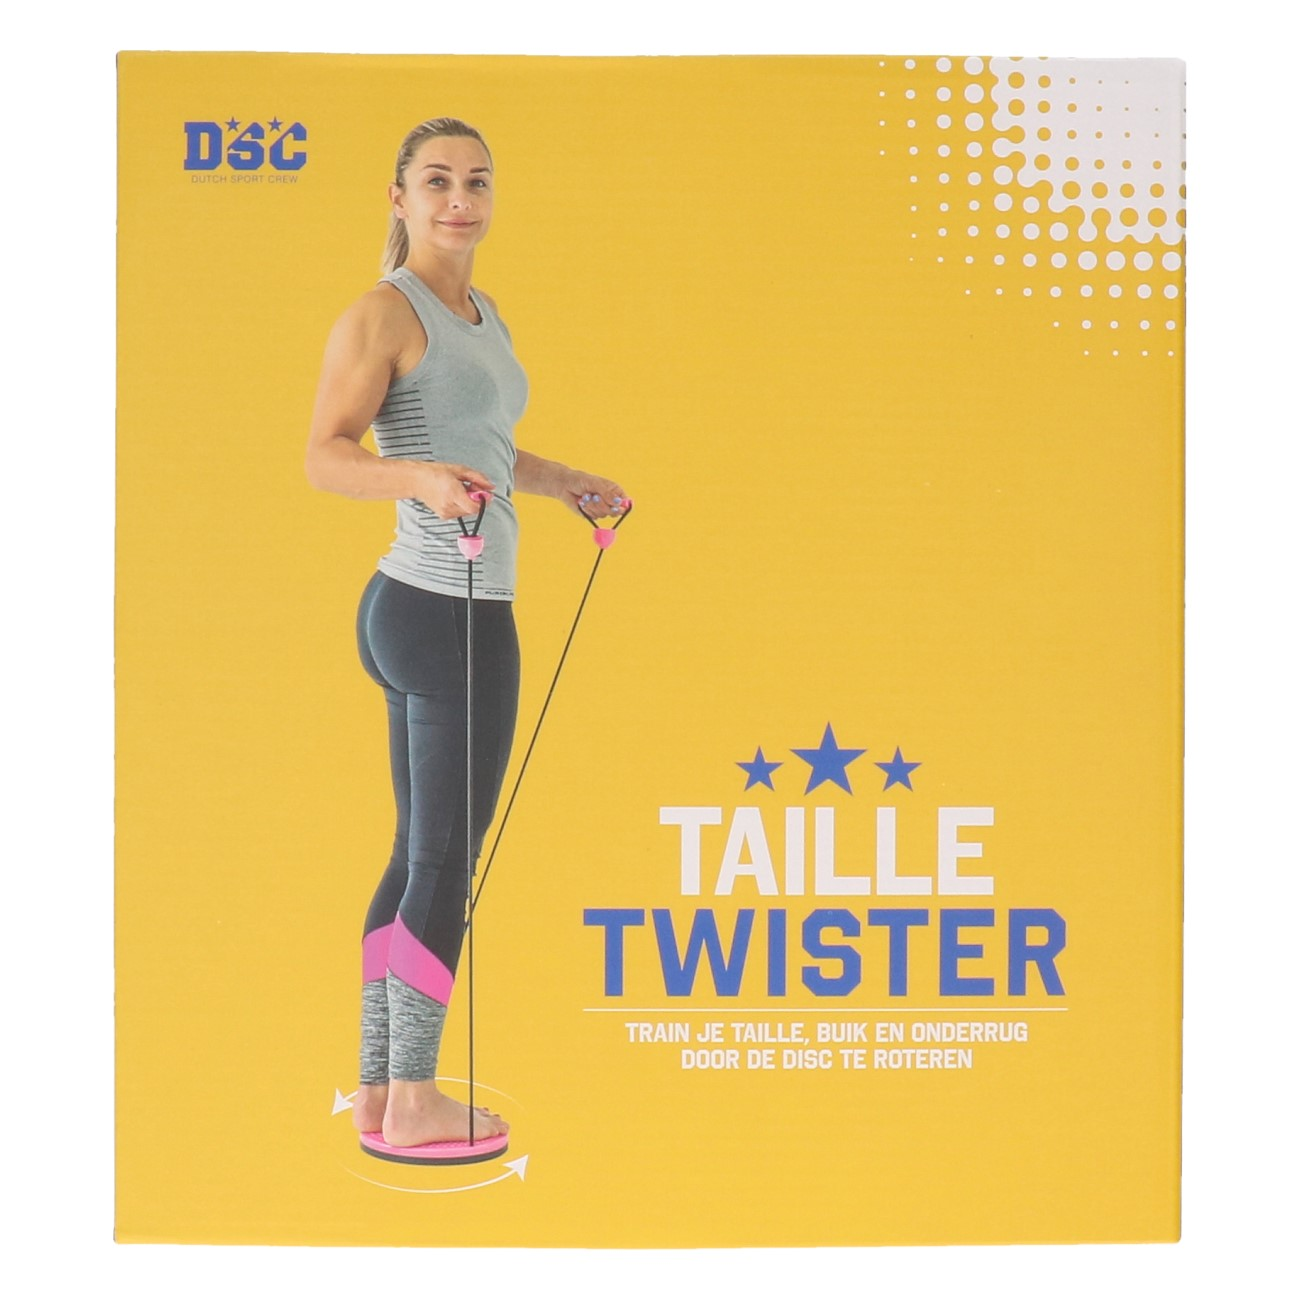 Taille twister